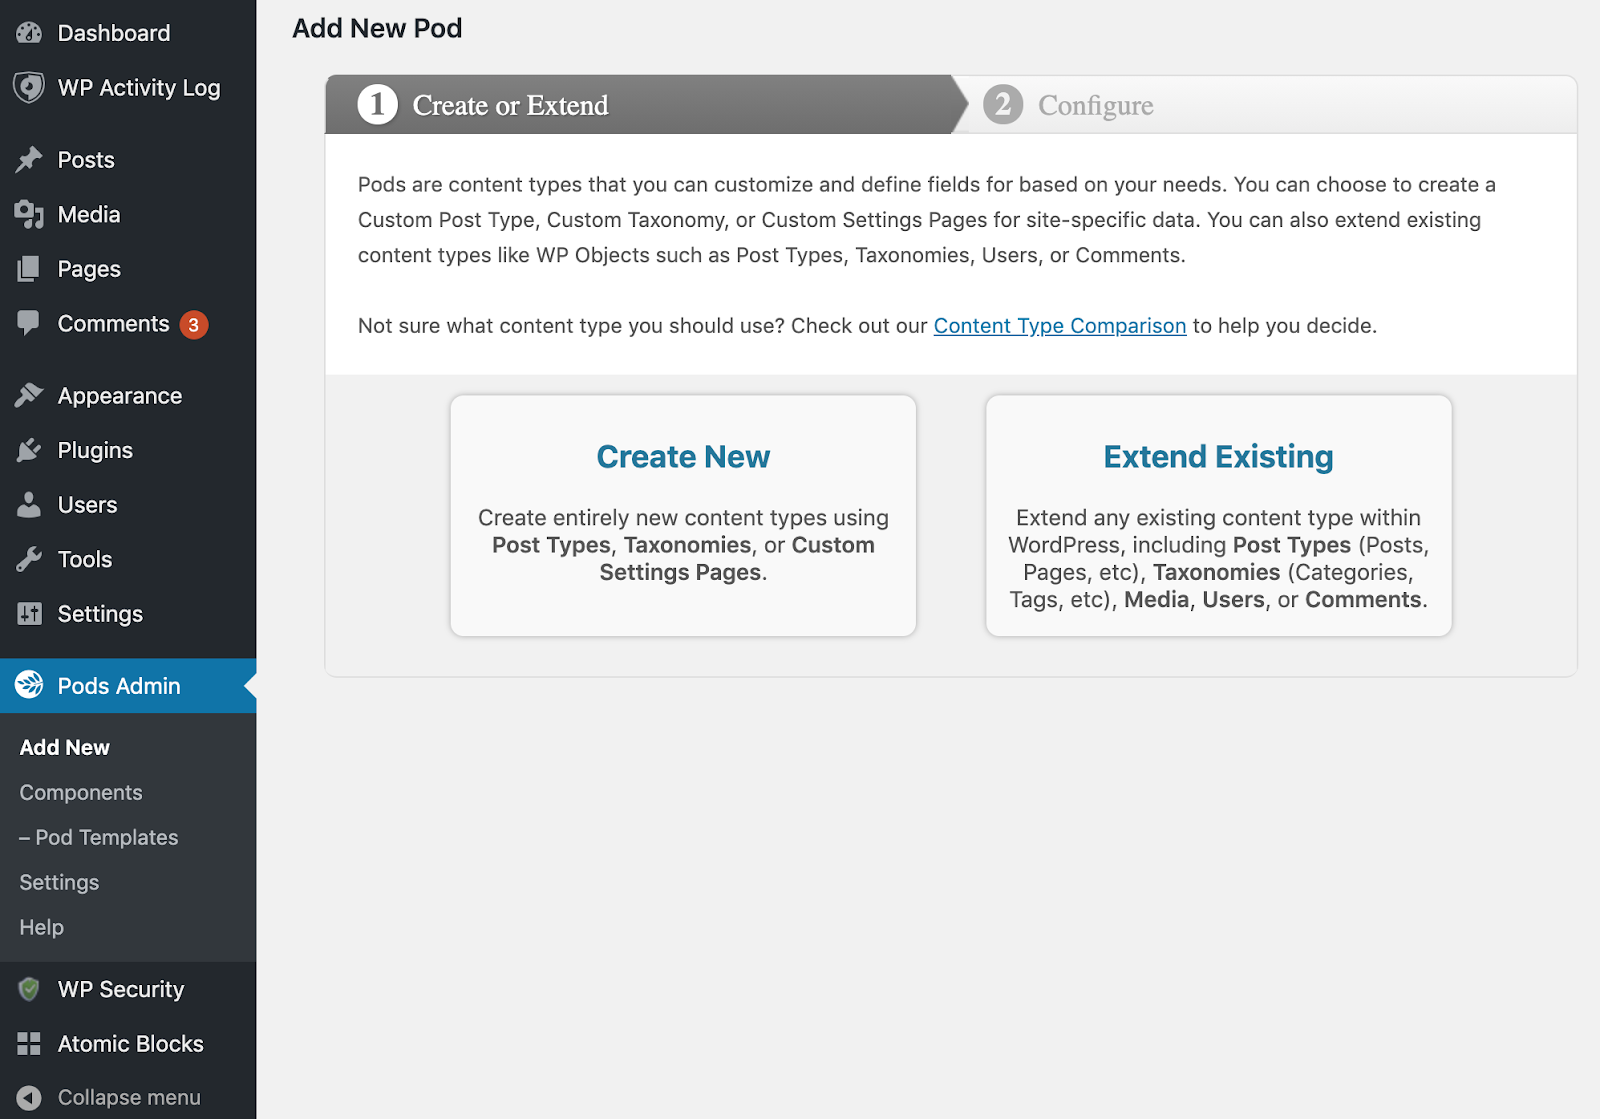 Pods Admin > Add New screen within your WordPress dashboard